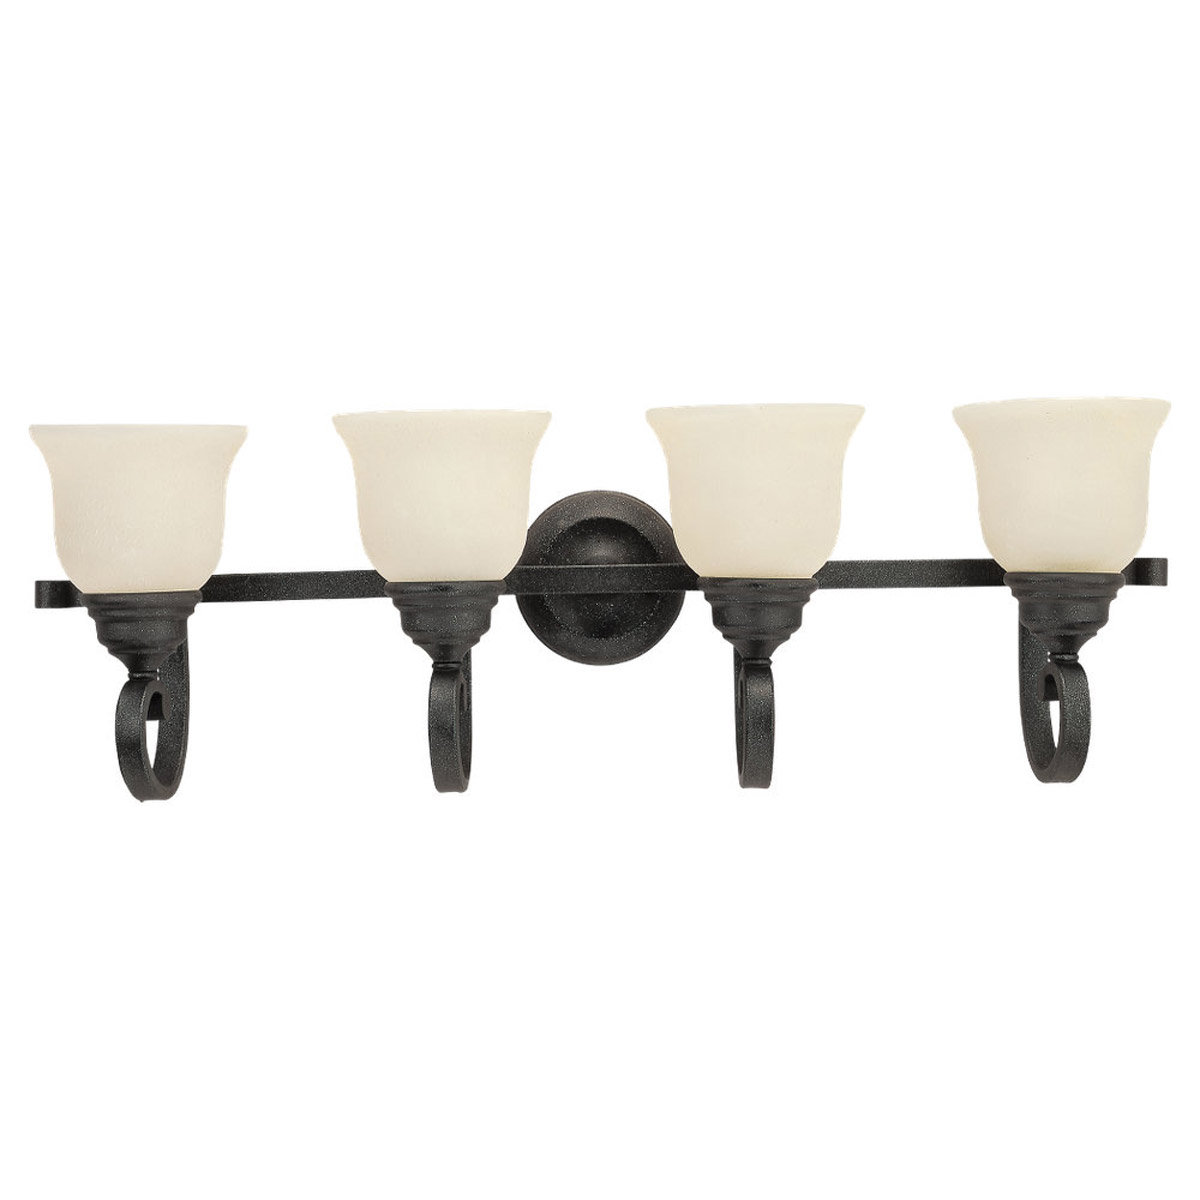 Sea Gull Lighting Serenity 4 Light Bath Vanity in Weathered Iron 44192-07